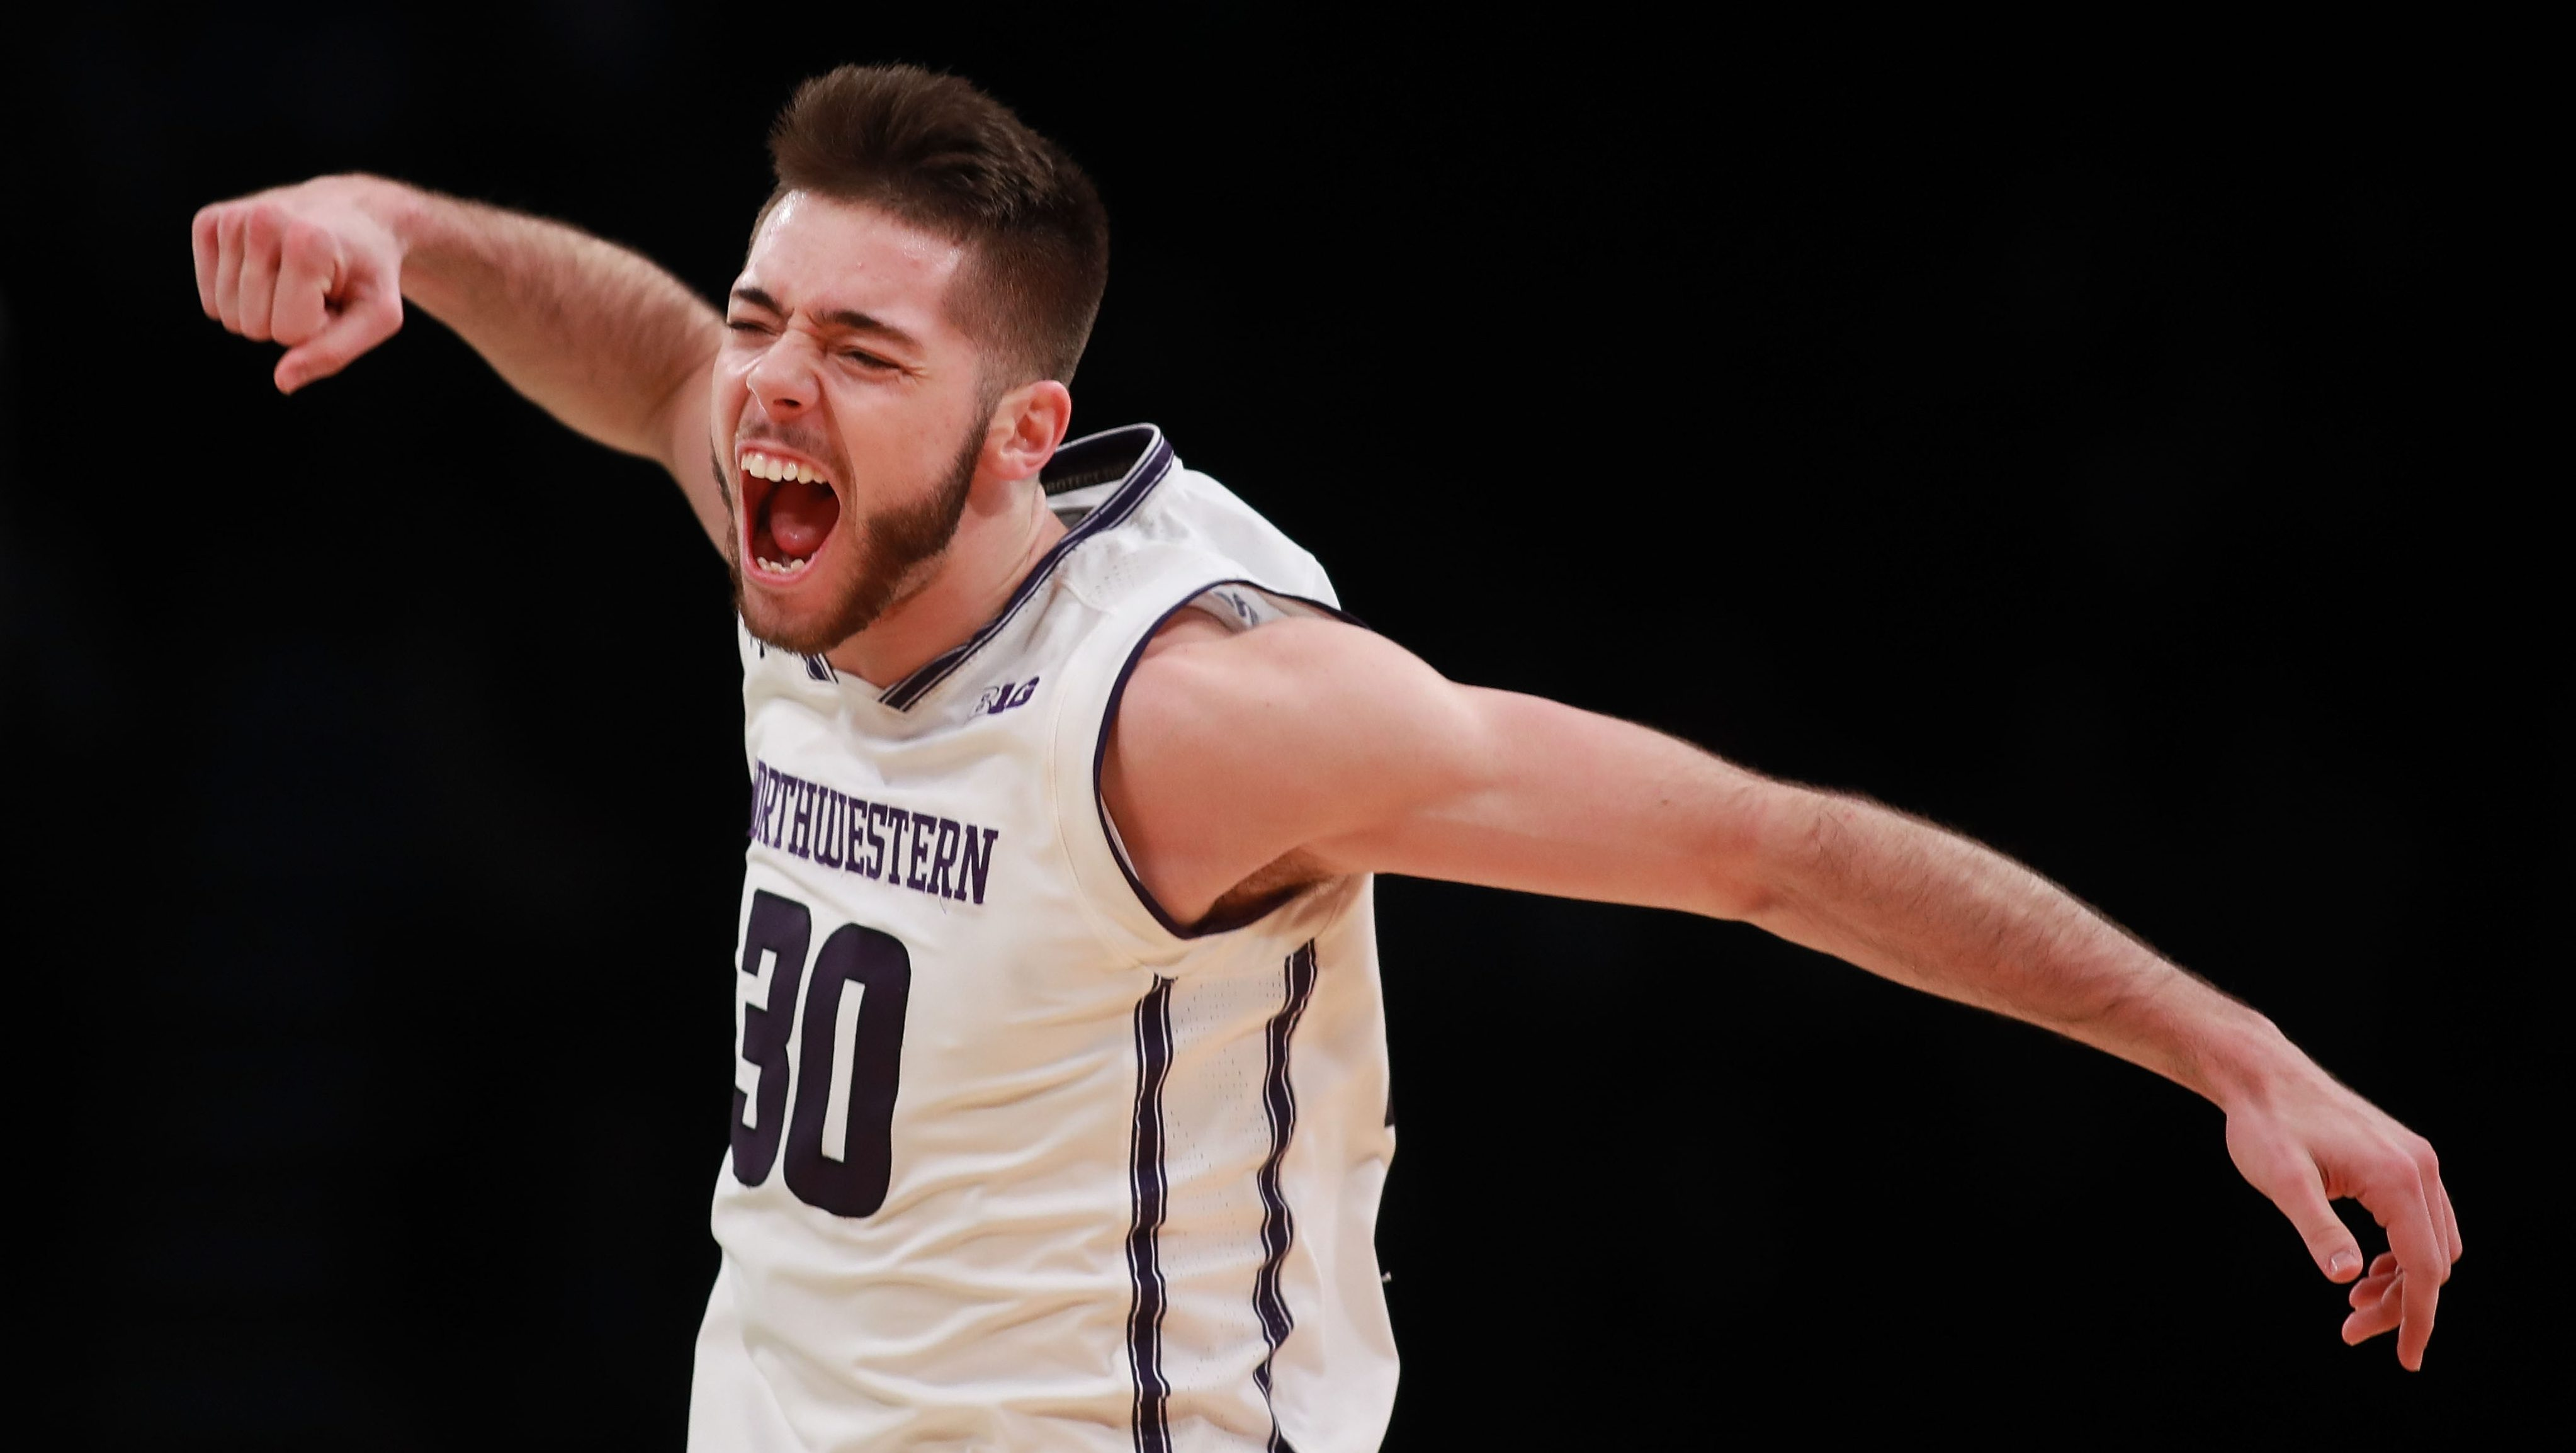 NEW YORK, NY - NOVEMBER 22: Bryant McIntosh #30 of the Northwestern Wildcats celebrates after hitting a three pointer against the Notre Dame Fighting Irish in the second half during the championship game of the Legends Classic at Barclays Center on November 22, 2016 in the Brooklyn borough of New York City. (Photo by Michael Reaves/Getty Images)